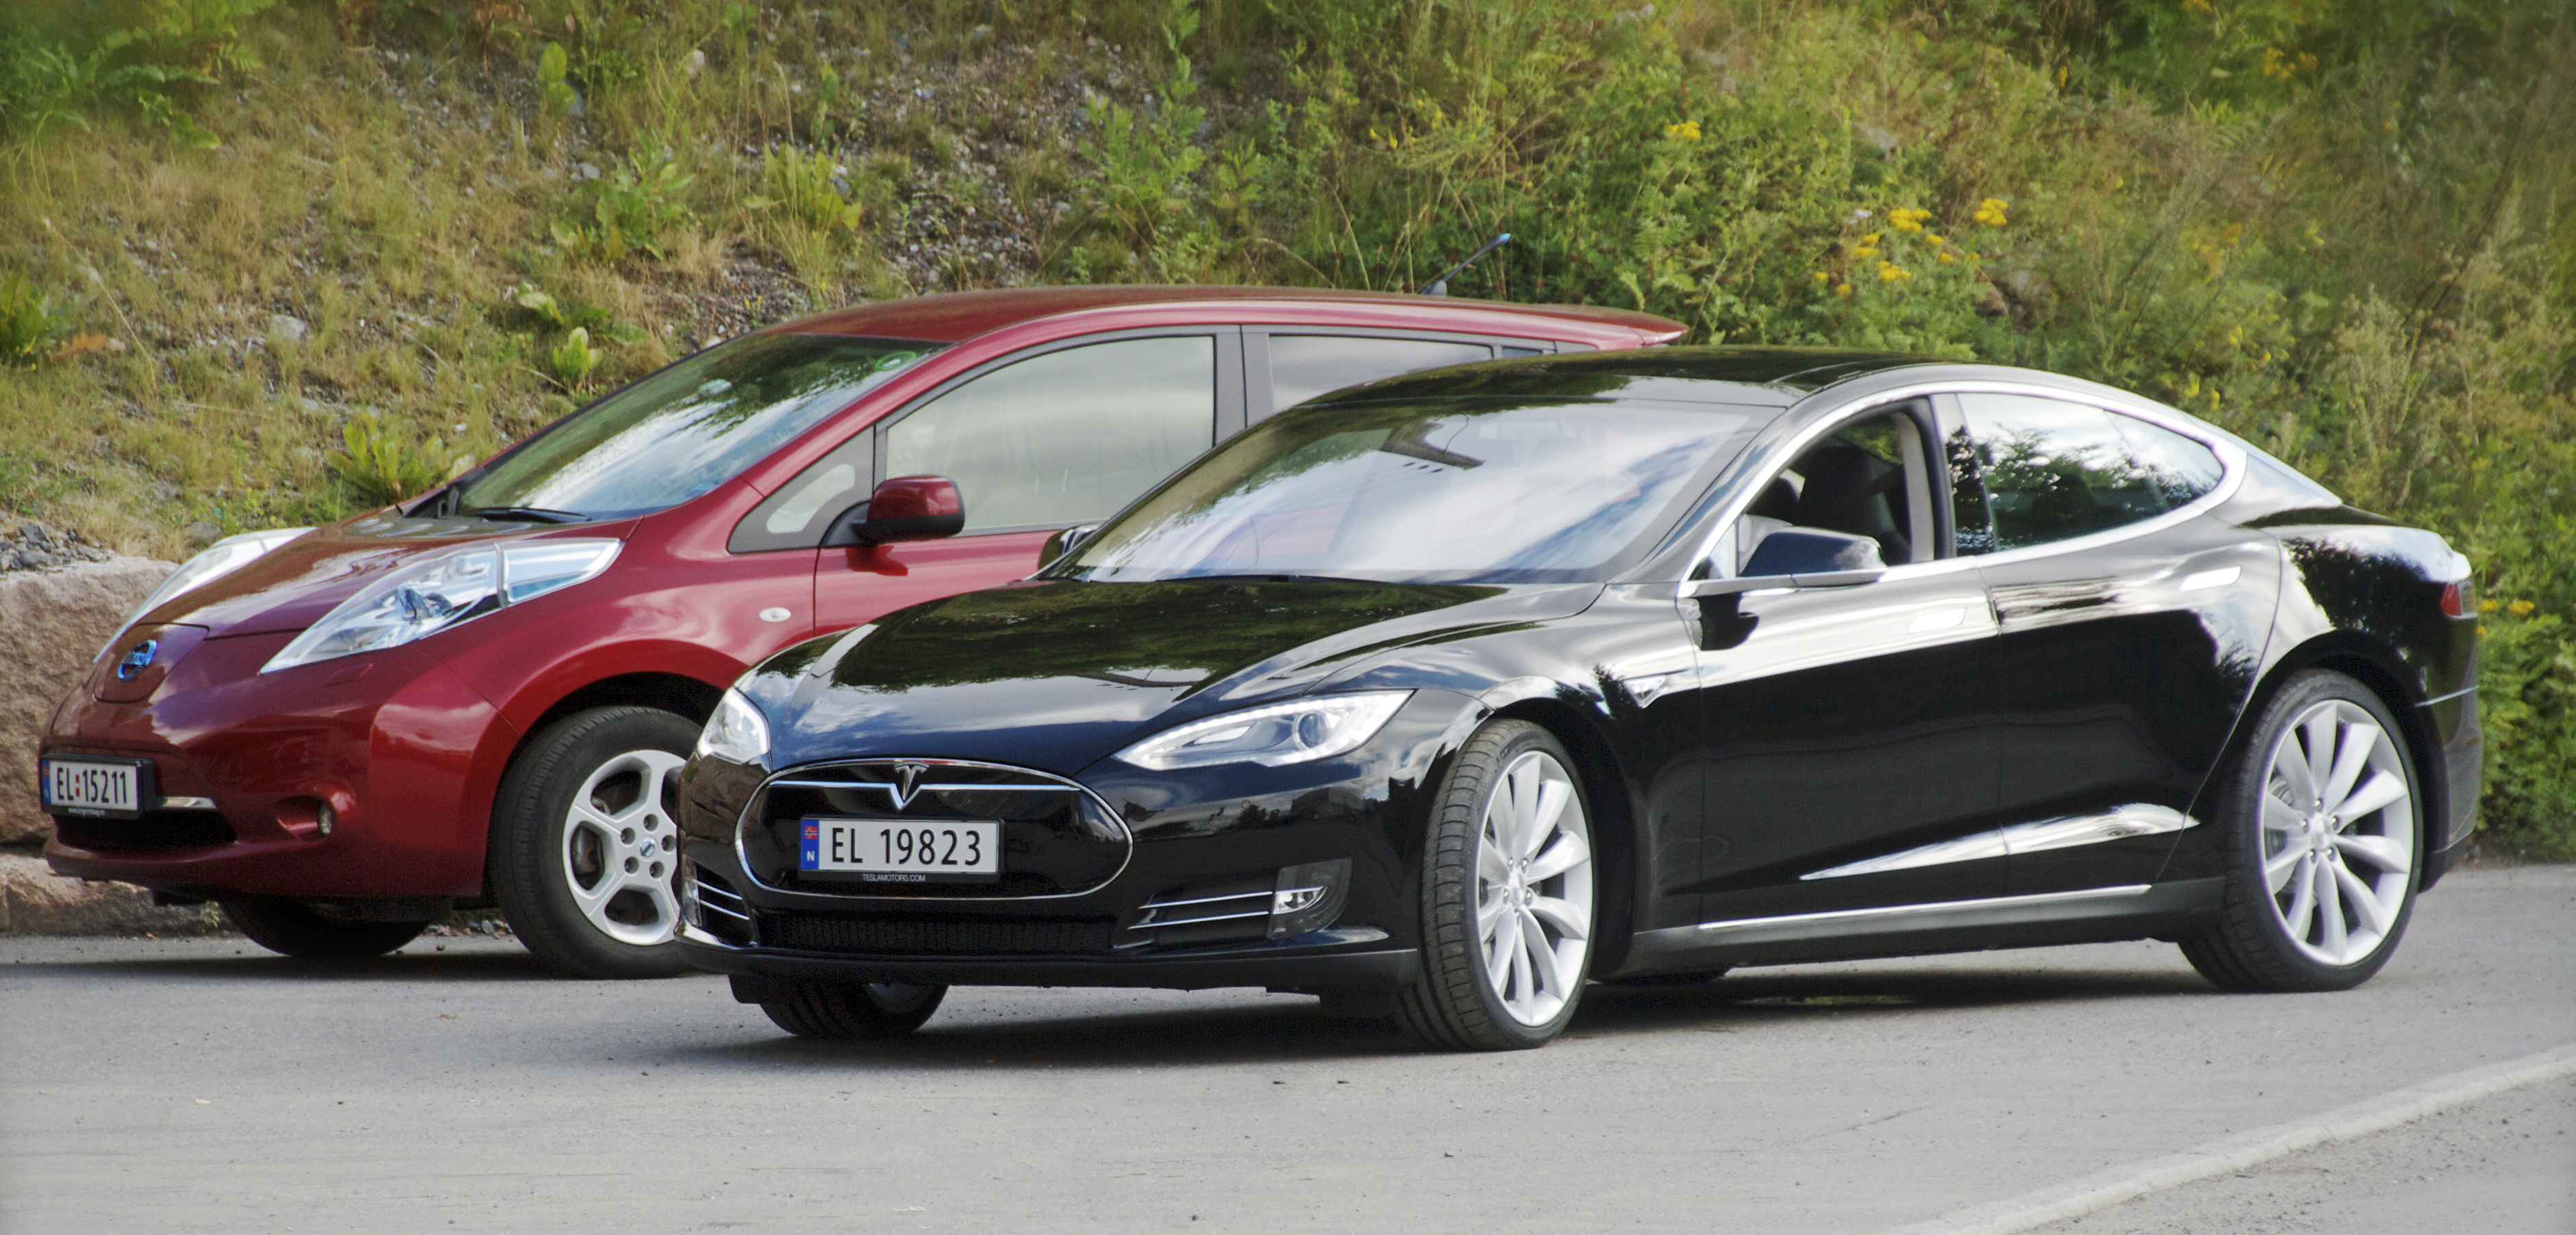 How Is a Tesla Different from Regular Electric Car?